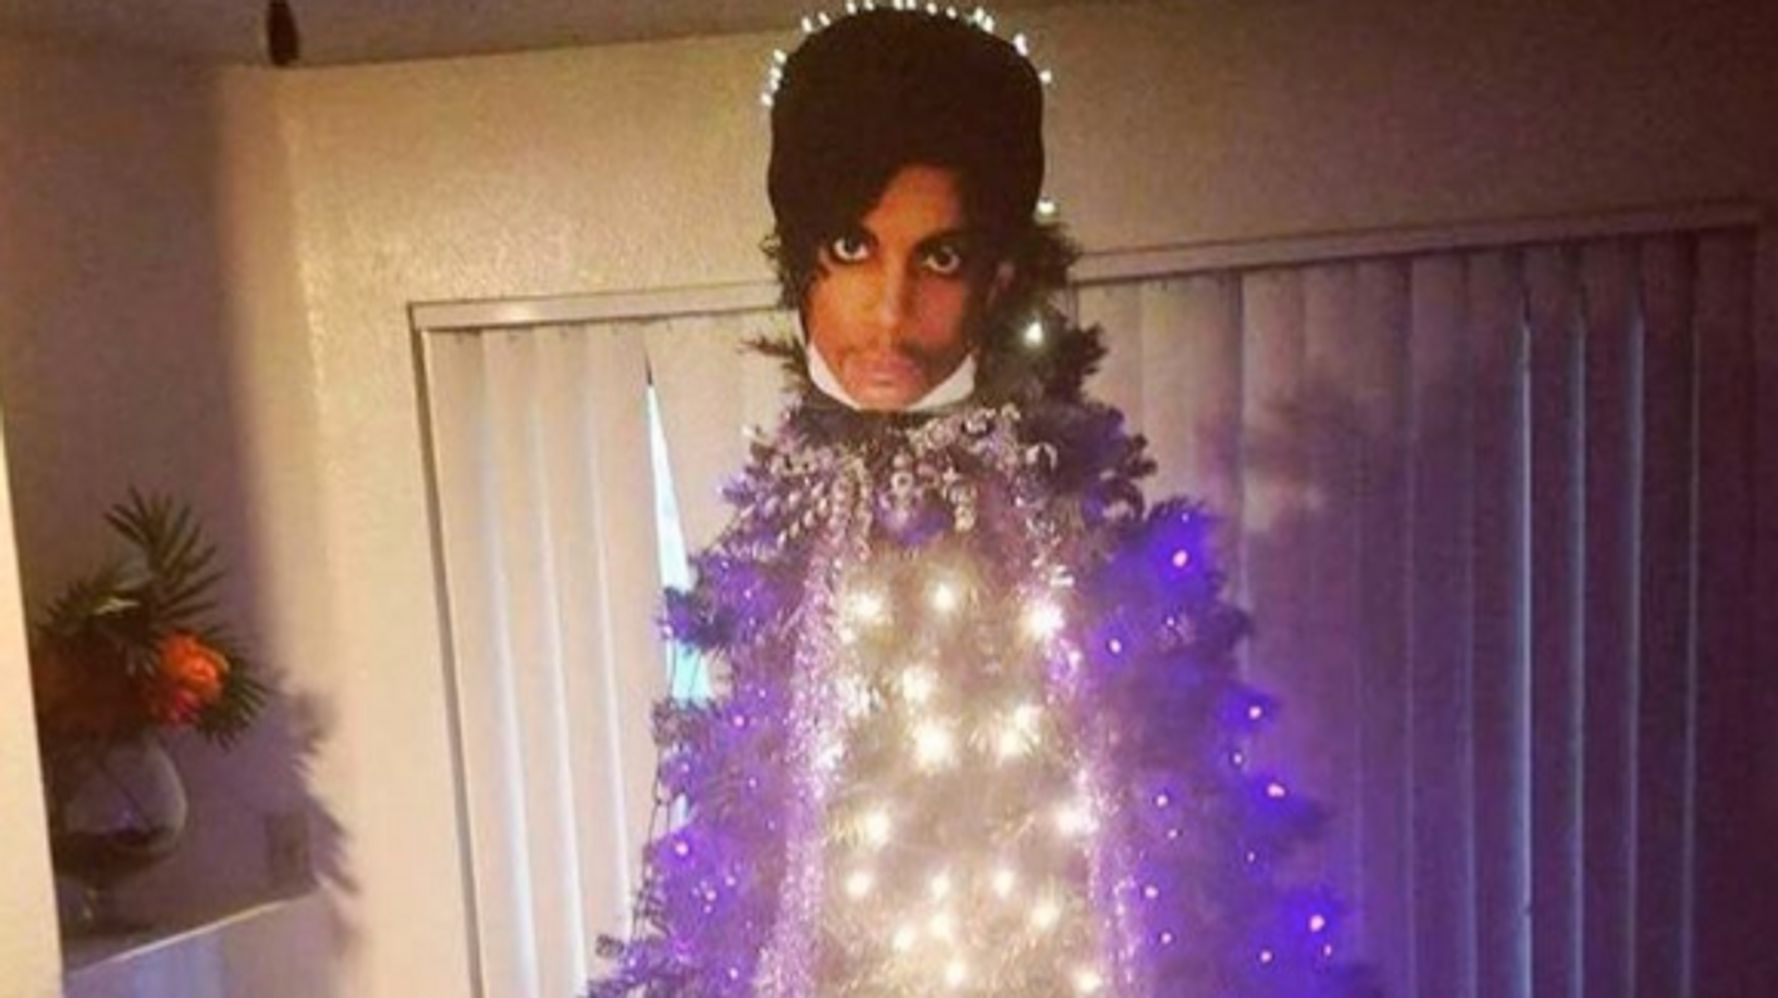 Prince Christmas Decorations.People Are Turning Their Christmas Decorations Into Prince